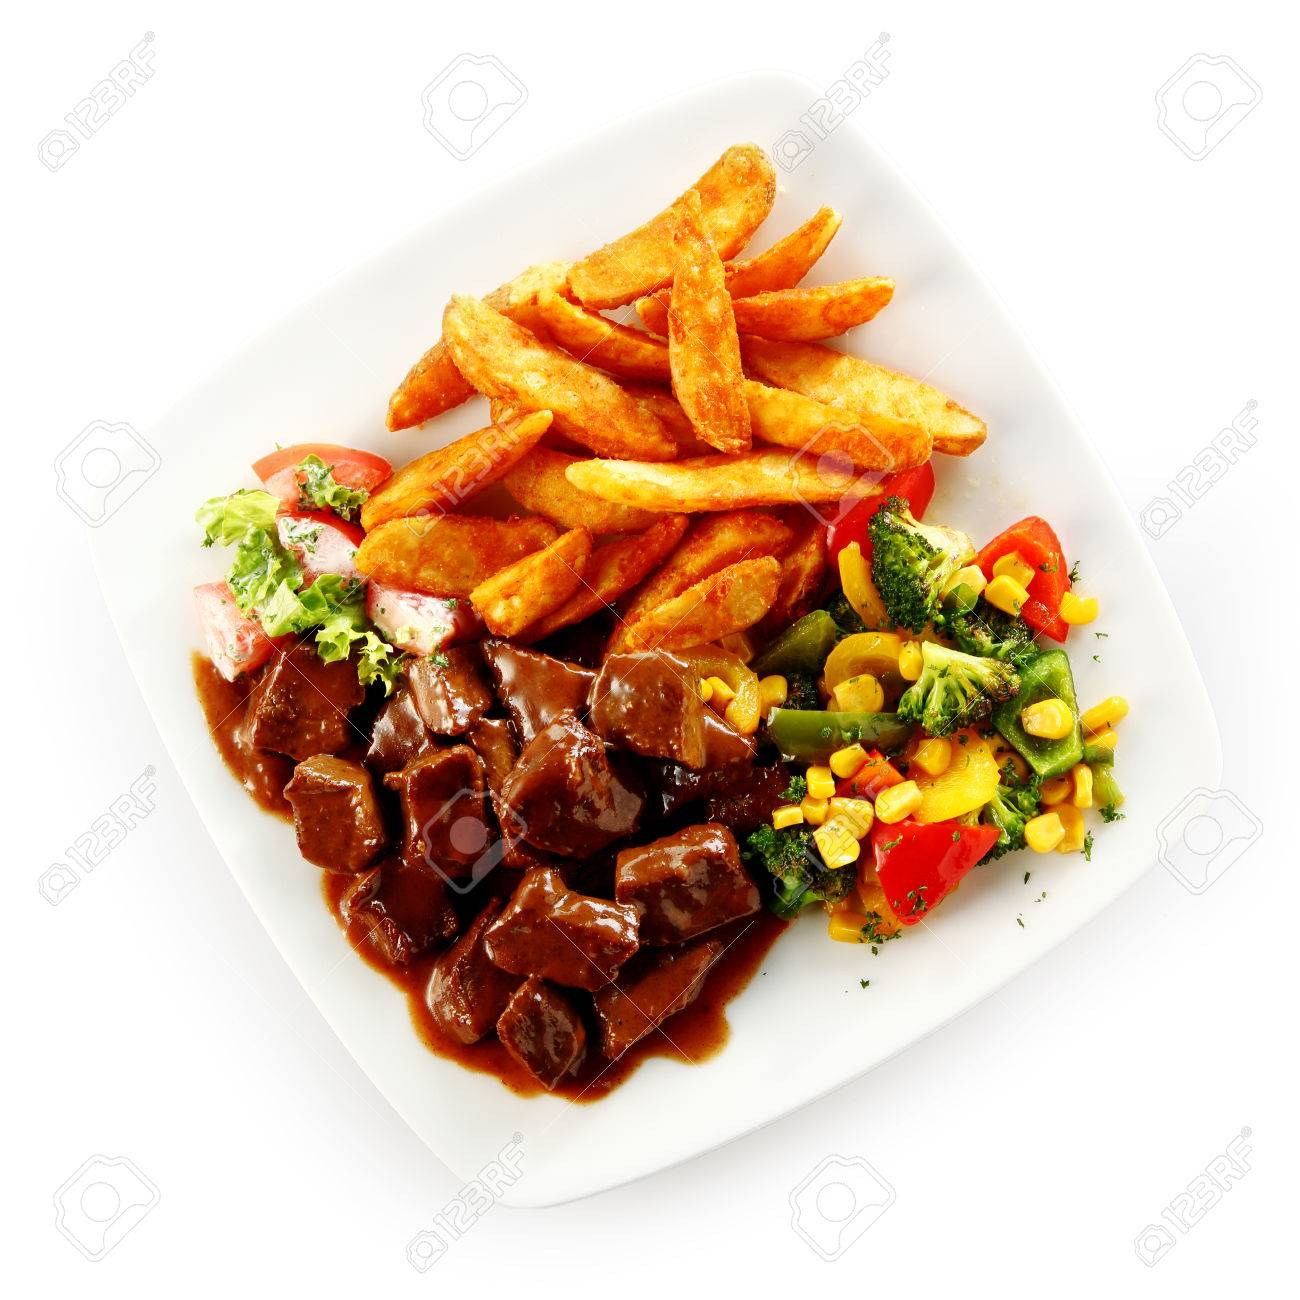 Beef Stew Or Goulash In A Delicious Rich Brown Gravy With Mixed Vegetables And Fried Potato